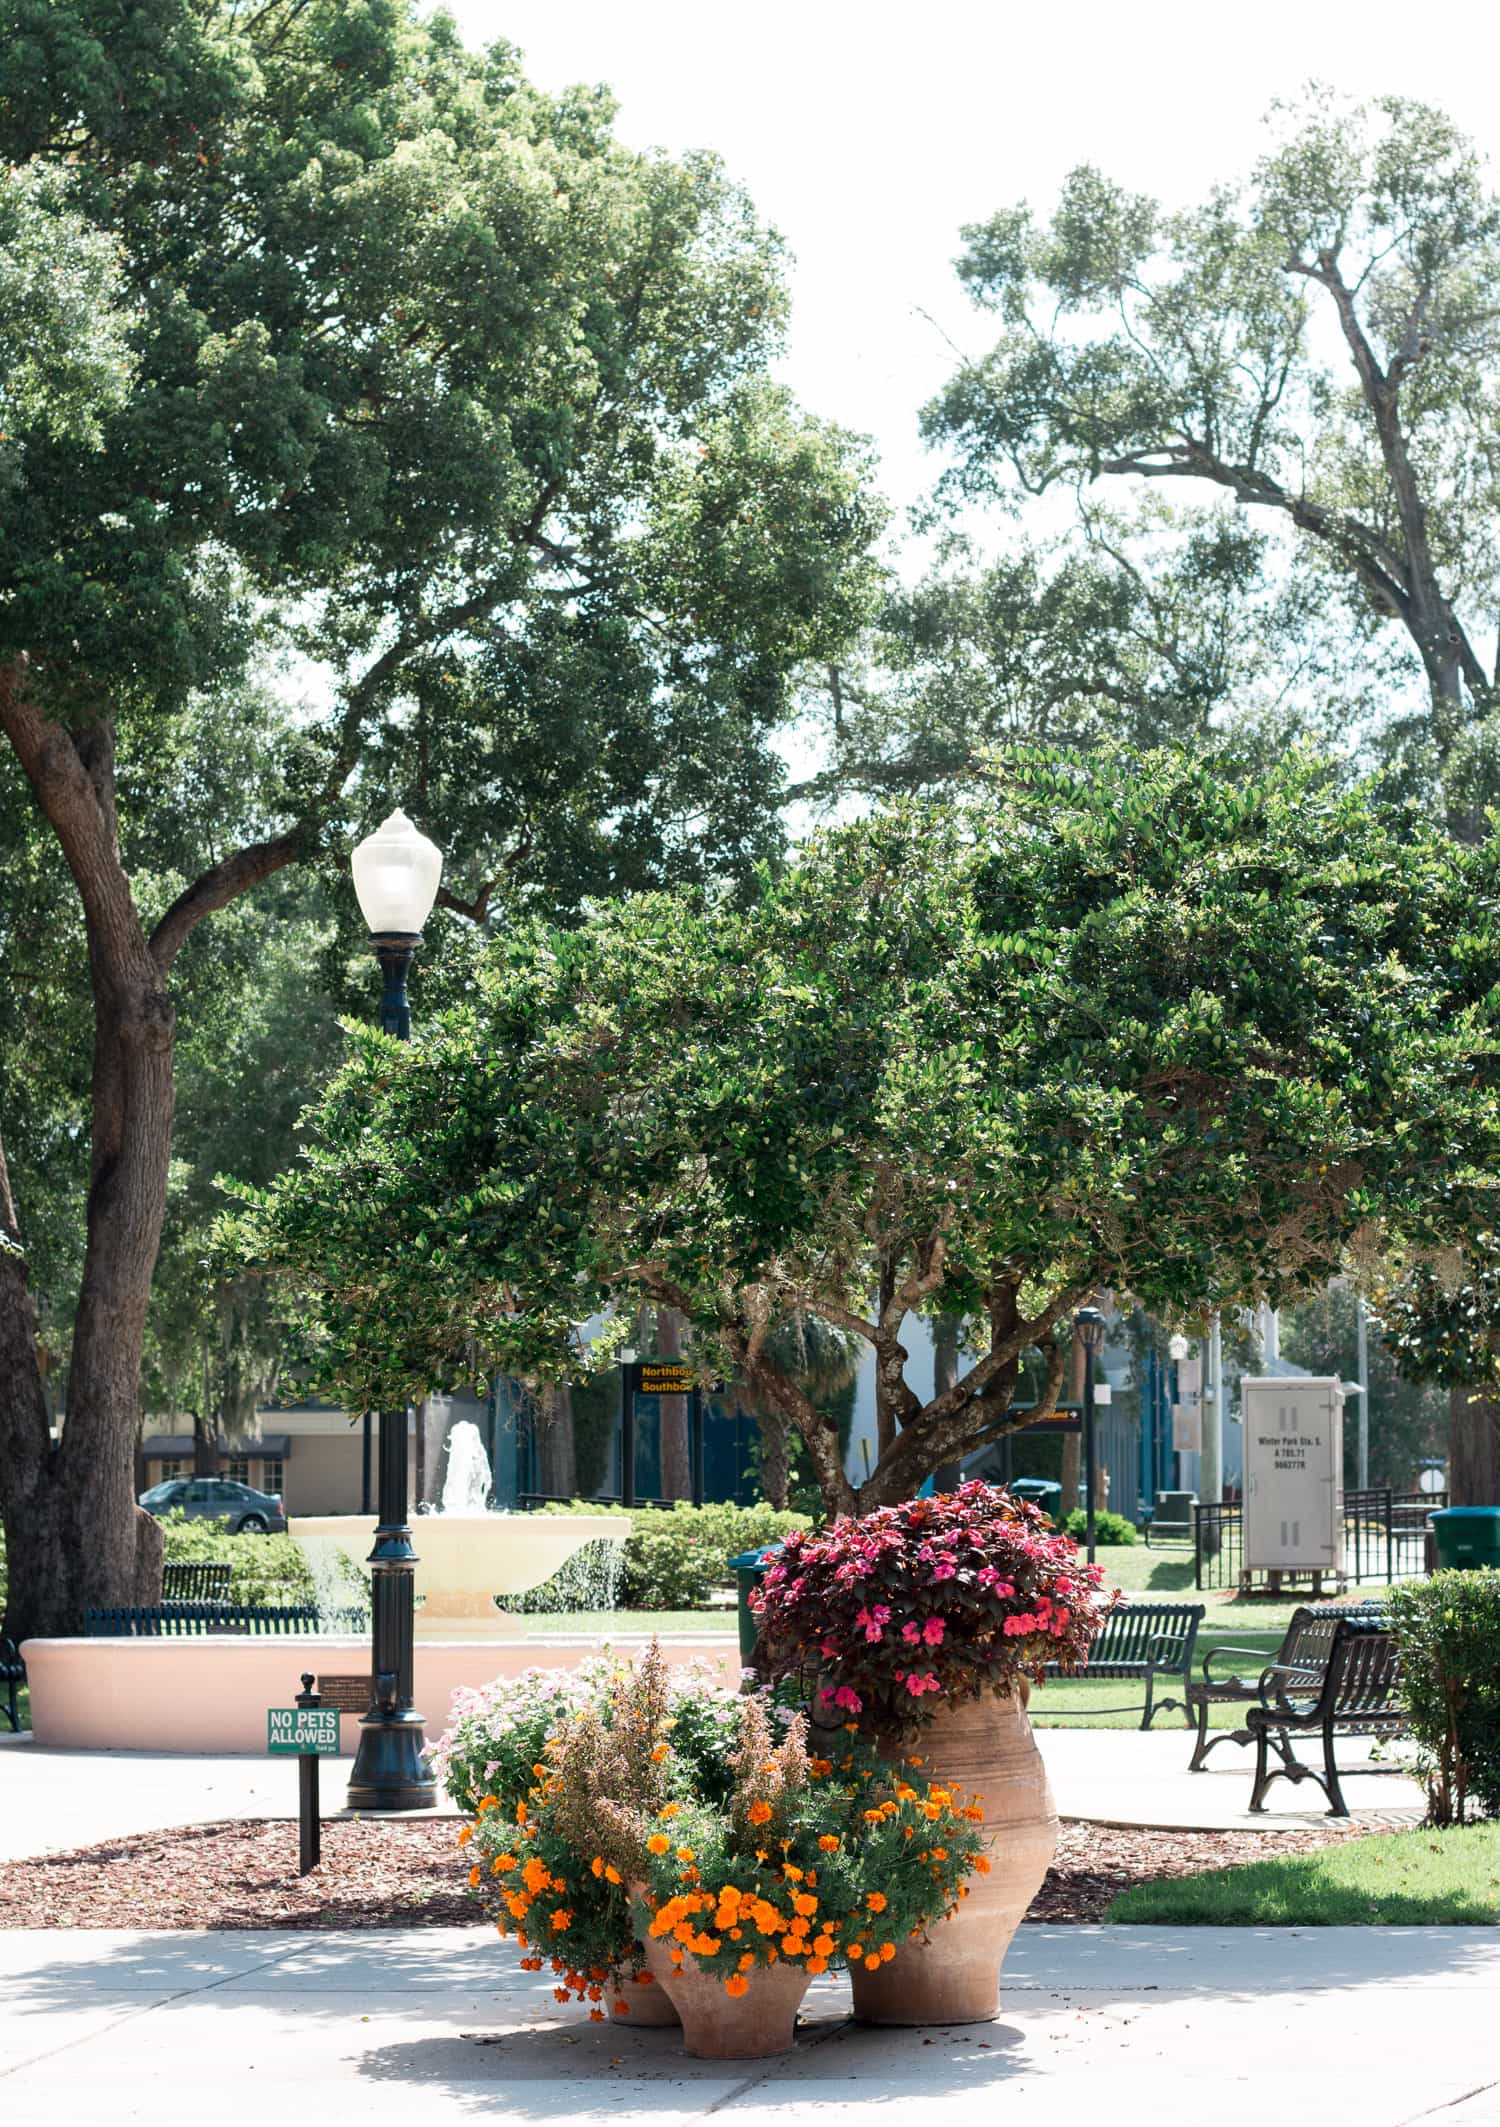 Park Avenue in Winter Park, Florida is one of Orlando's hidden gems! Planning a trip to Orlando? I've rounded up the top 10 things to do in Orlando, Florida, that are guaranteed to make your trip a success. Whether you're moving to Orlando or just headed in on vacation, you will LOVE this list of fun activities in Orlando by Florida travel blogger Ashley Brooke Nicholas #CORTatHome sponsored by CORT Furniture | affordable travel tips, orlando vacation tips, florida travel, vacation tip